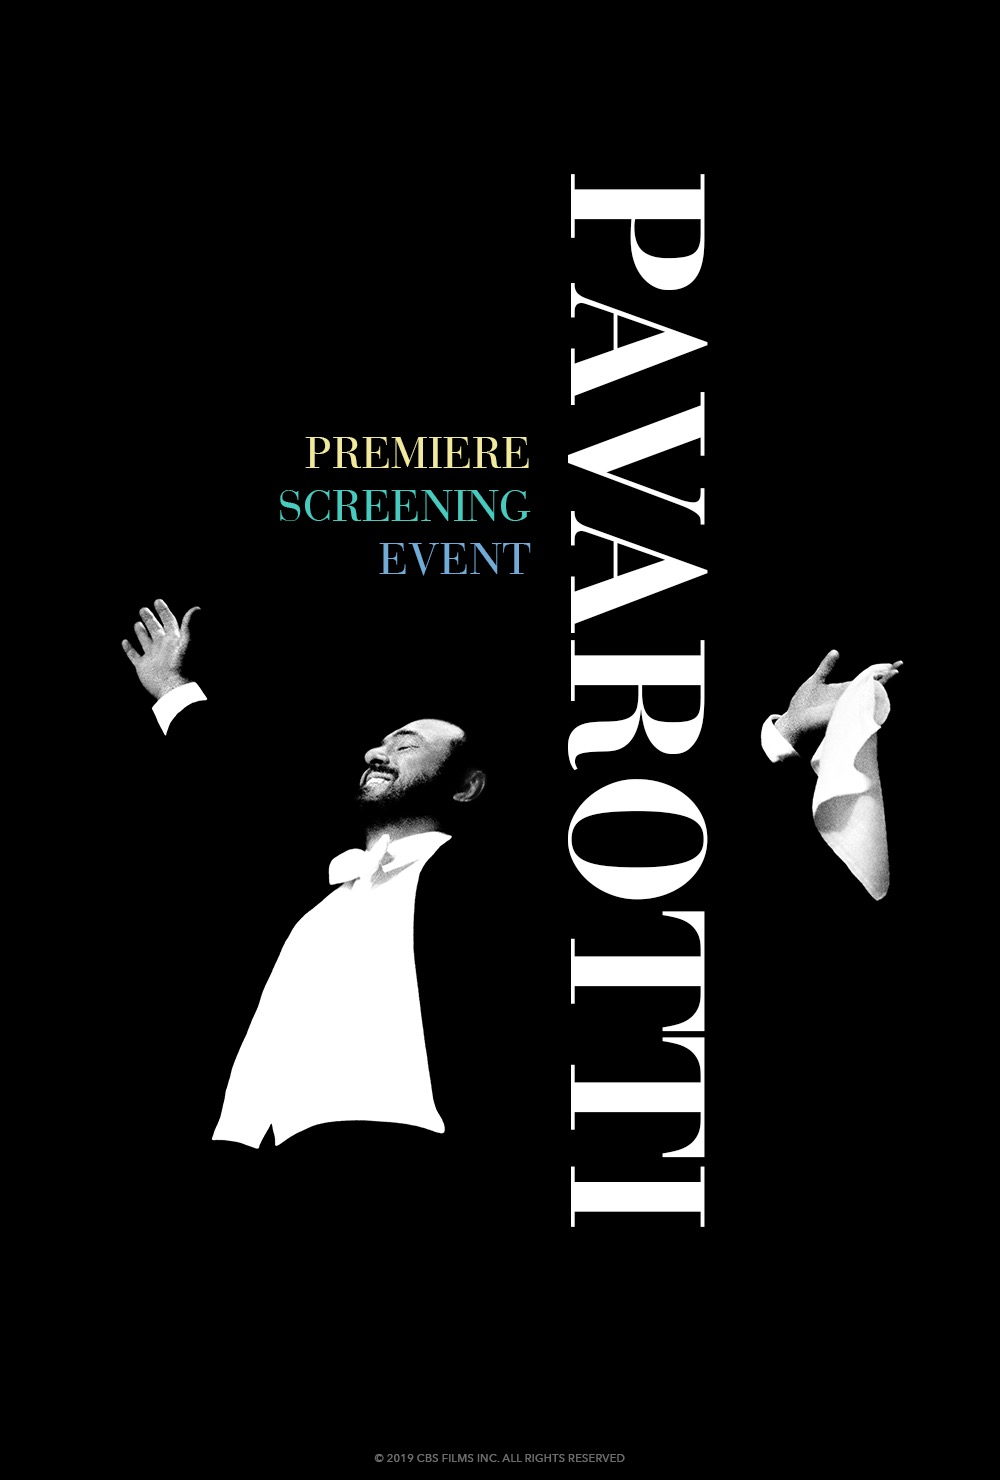 Pavarotti Premiere Screening Event